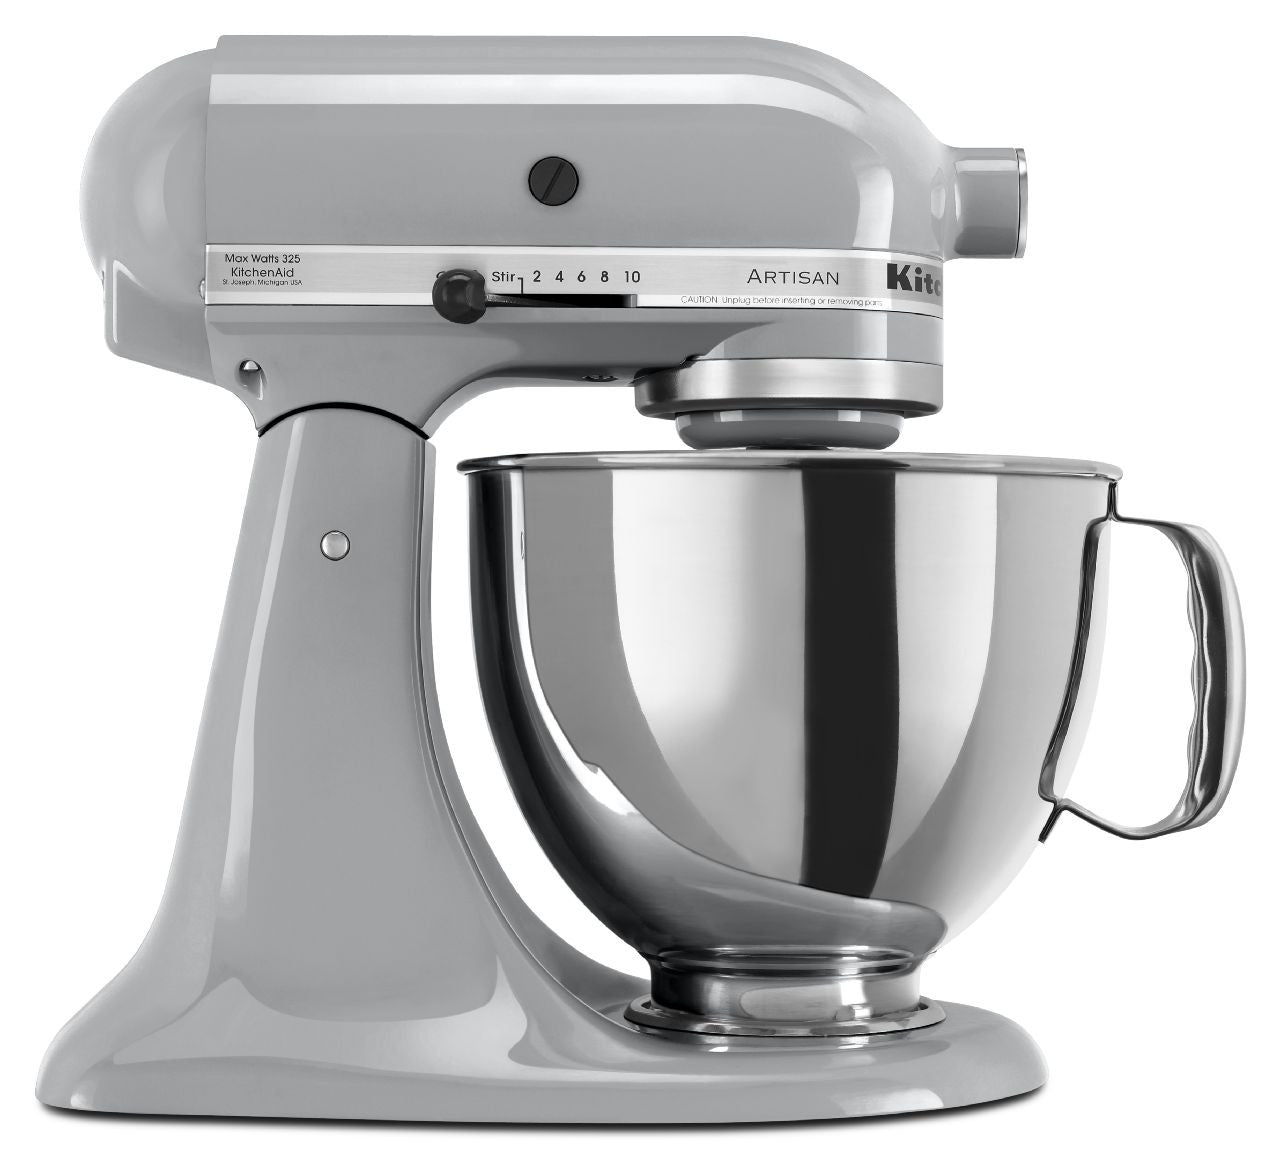 Kitchenaid 5 Qt. Artisan Series with Pouring Shield - Metallic Chrome KSM150PSMC